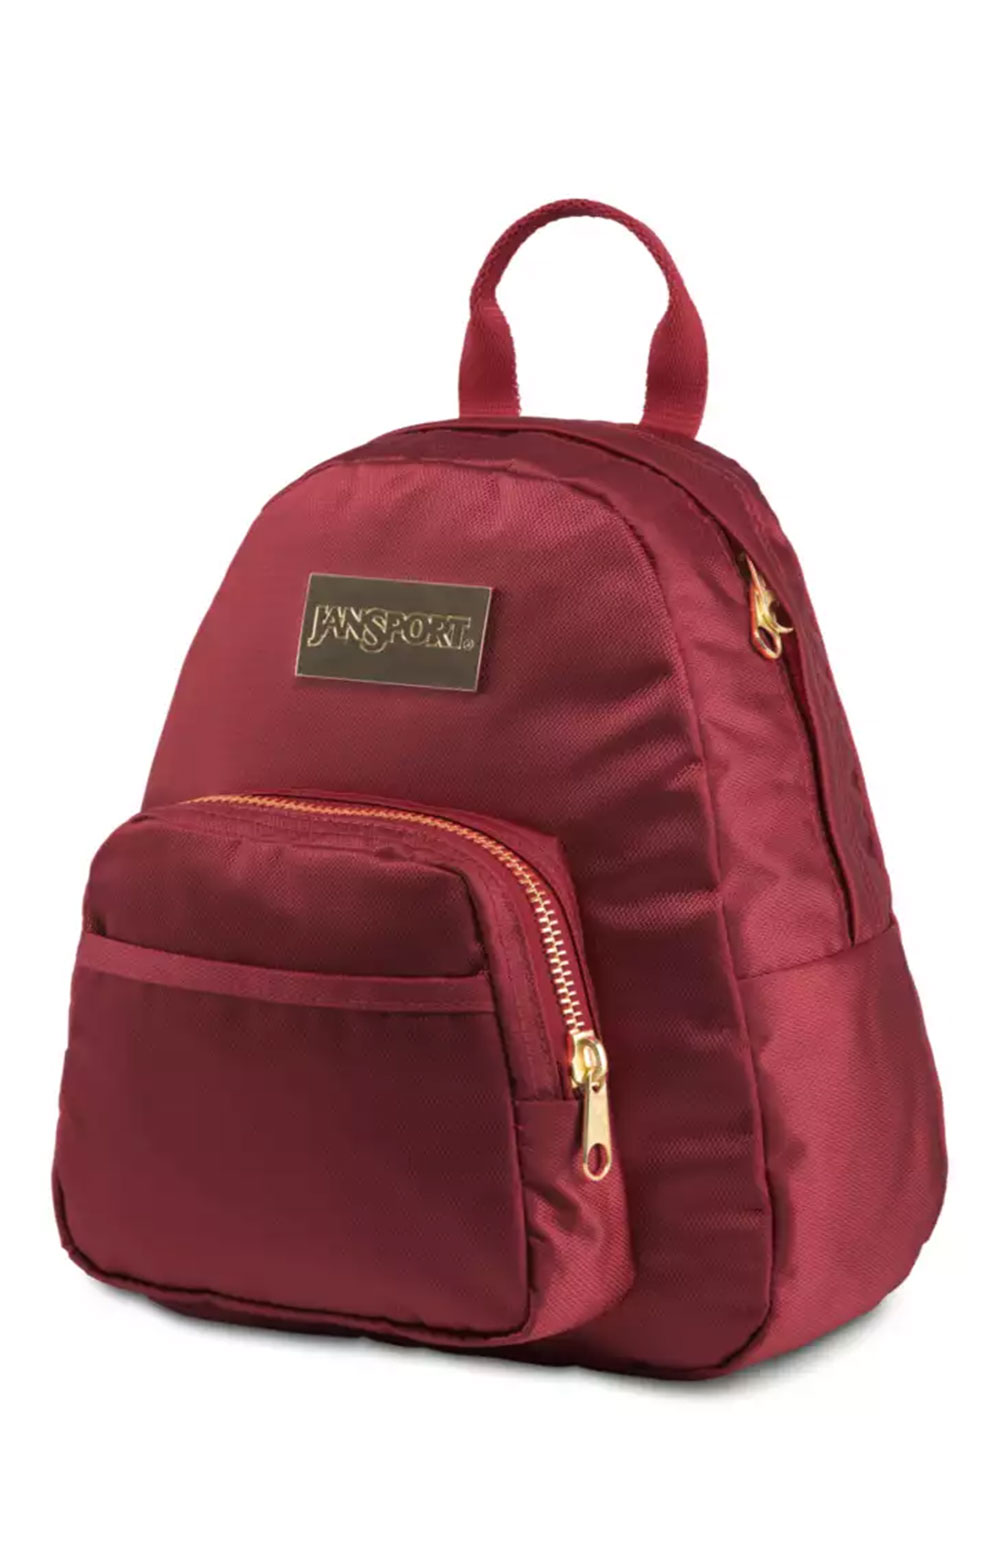 Half Pint Luxe Backpack - Bright Cherry  2